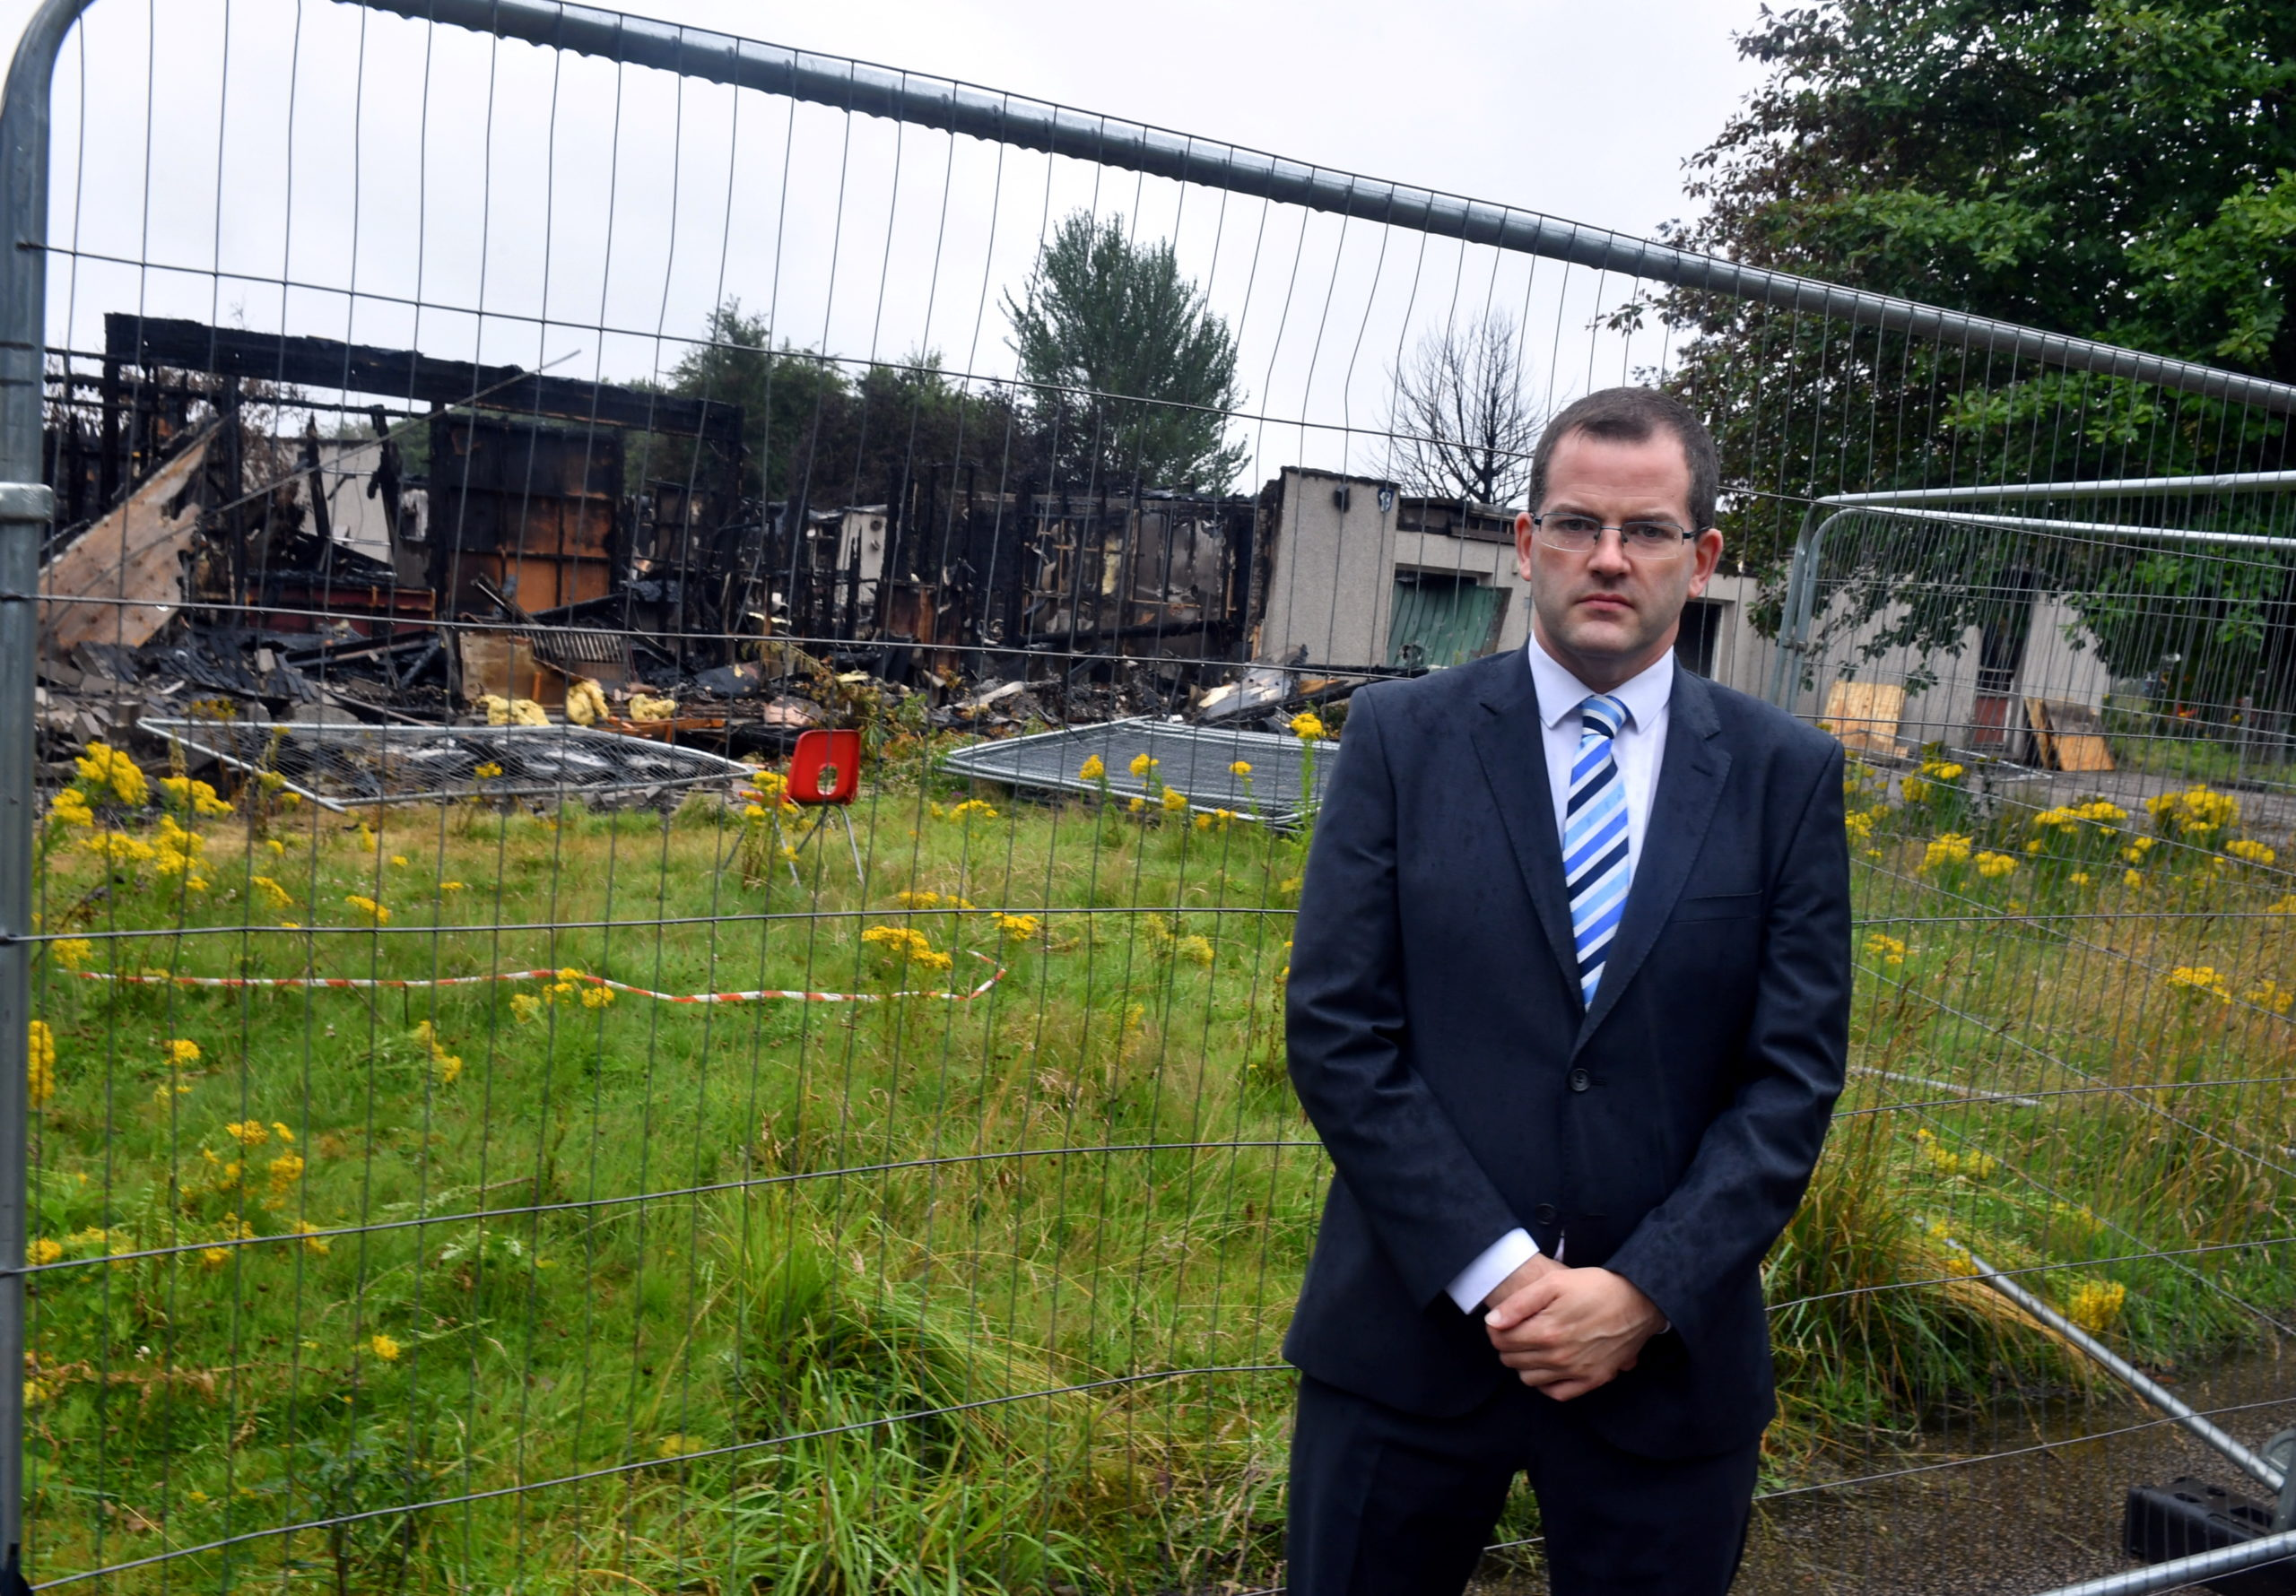 Mark McDonald MSP is hitting out at how long the Cordyce School (which was destroyed by a fire in 2017) took to be redeveloped by the council. Picture by Chris Sumner